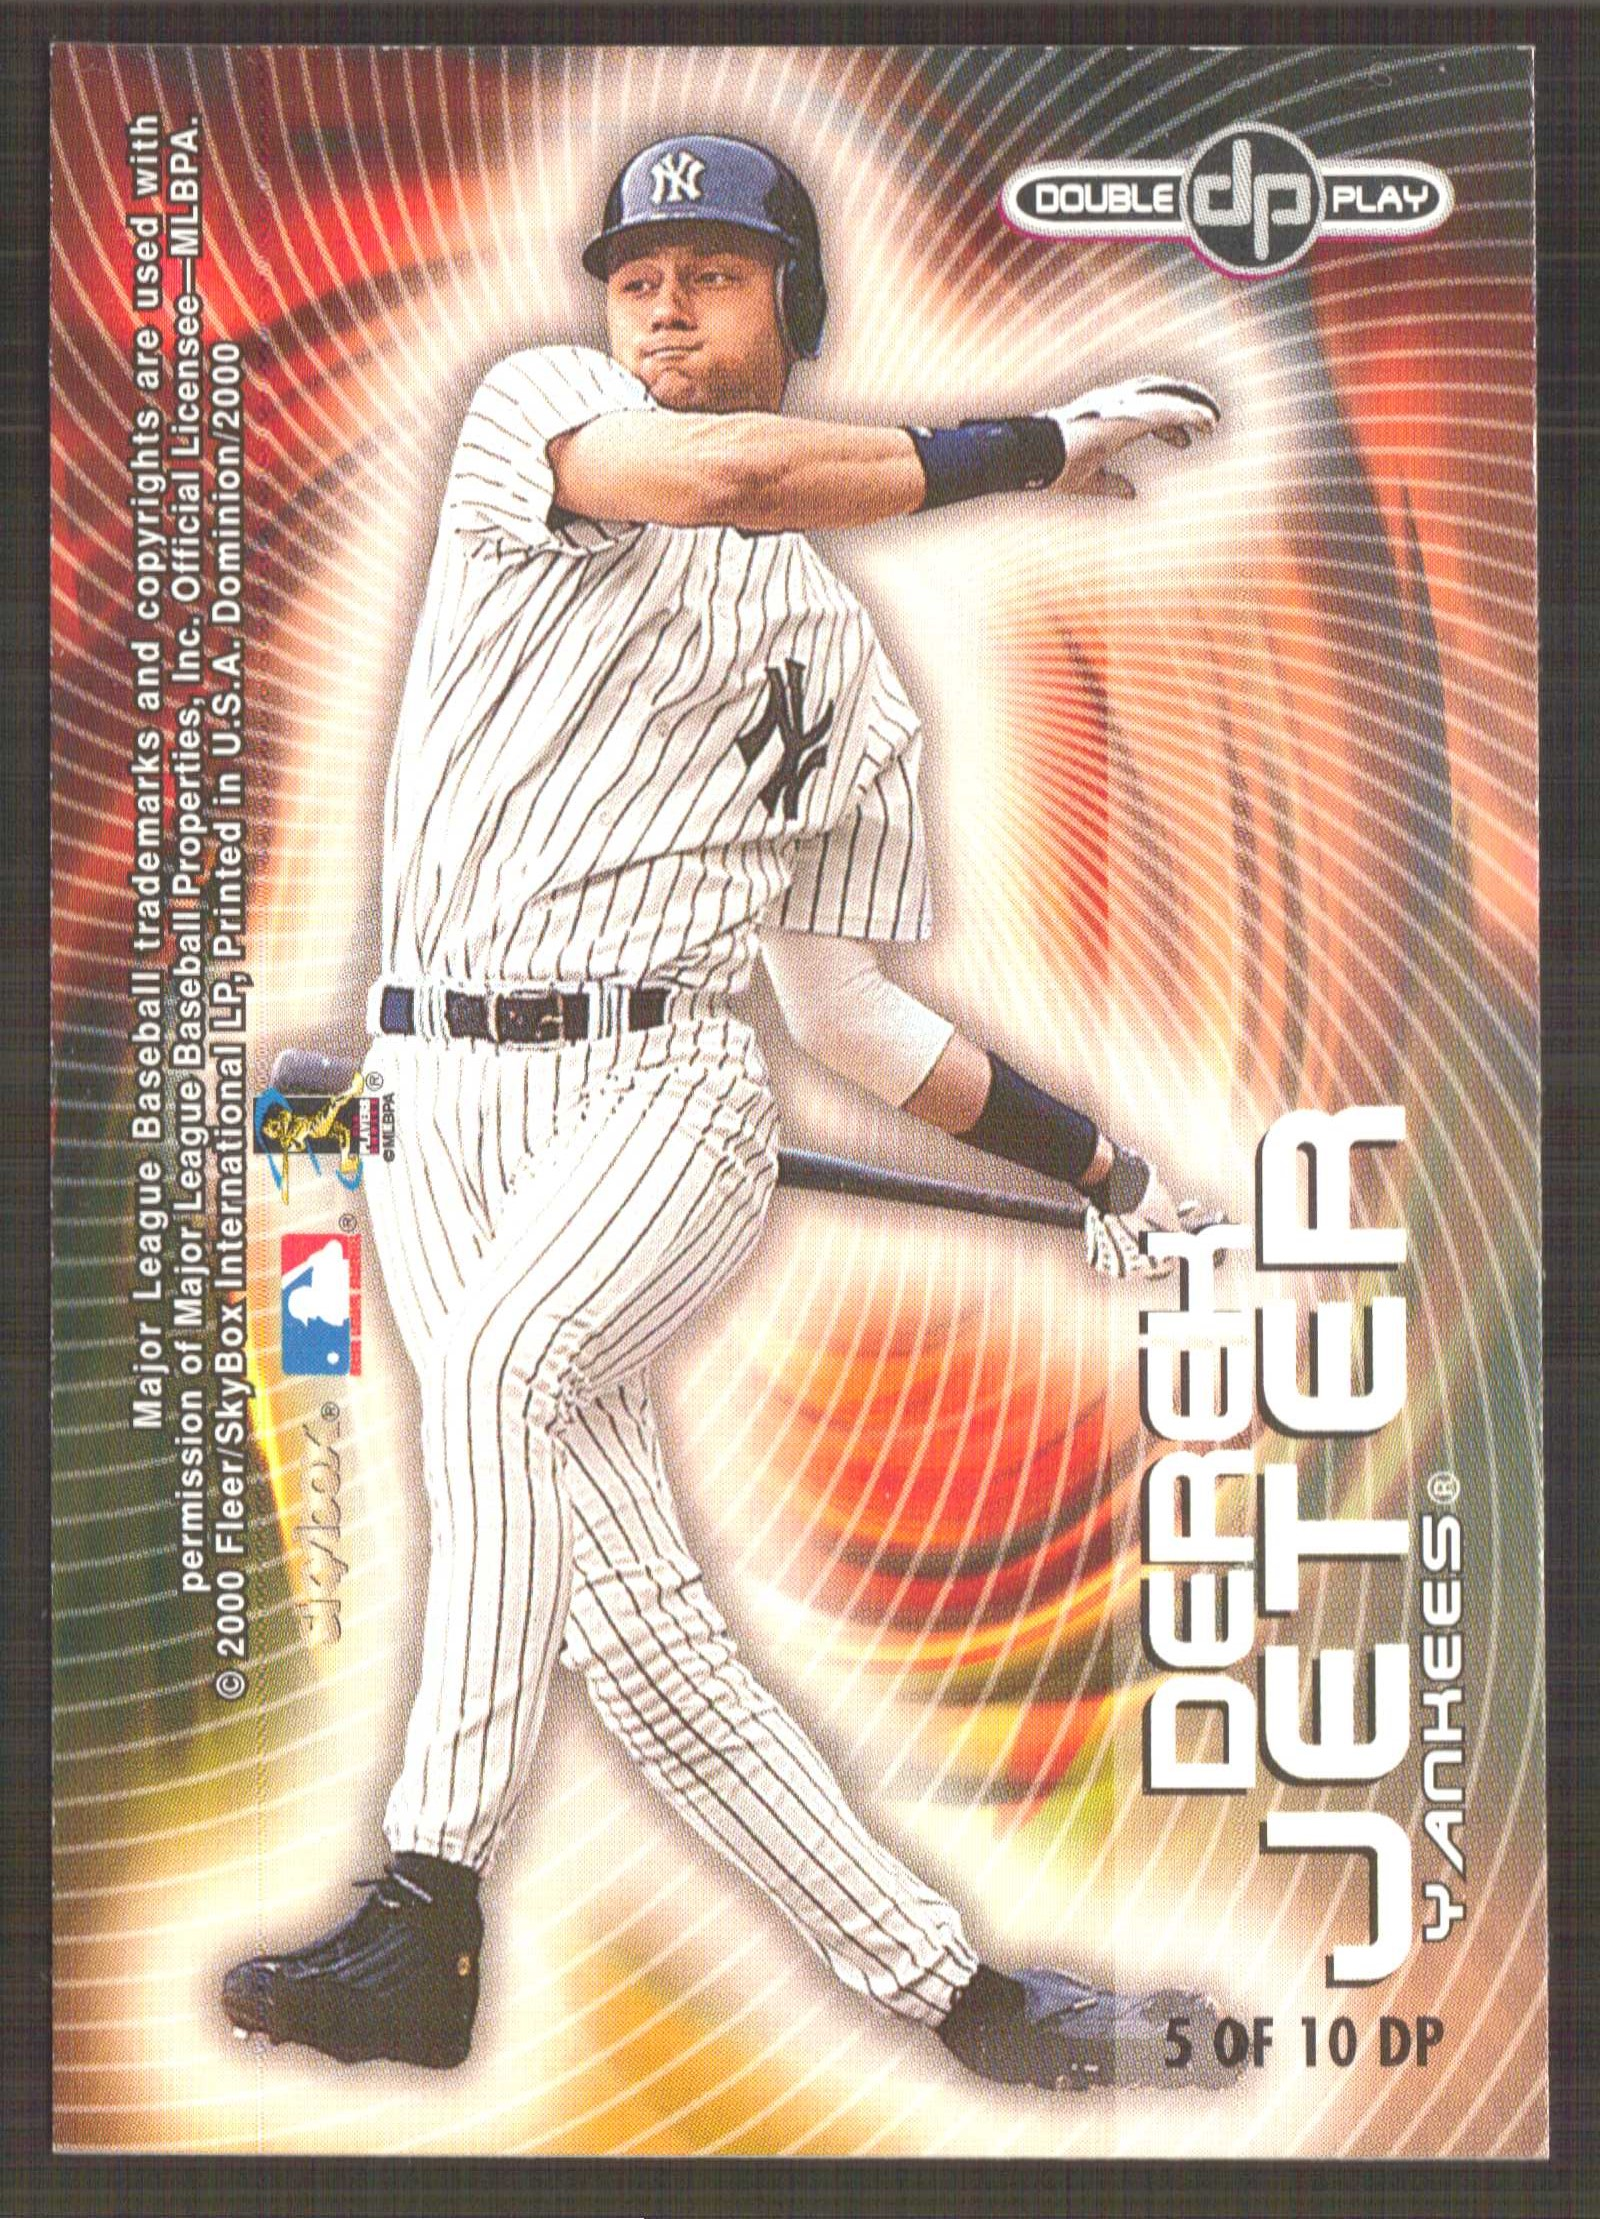 2000 SkyBox Dominion Double Play #DP5 C.Ripken/D.Jeter